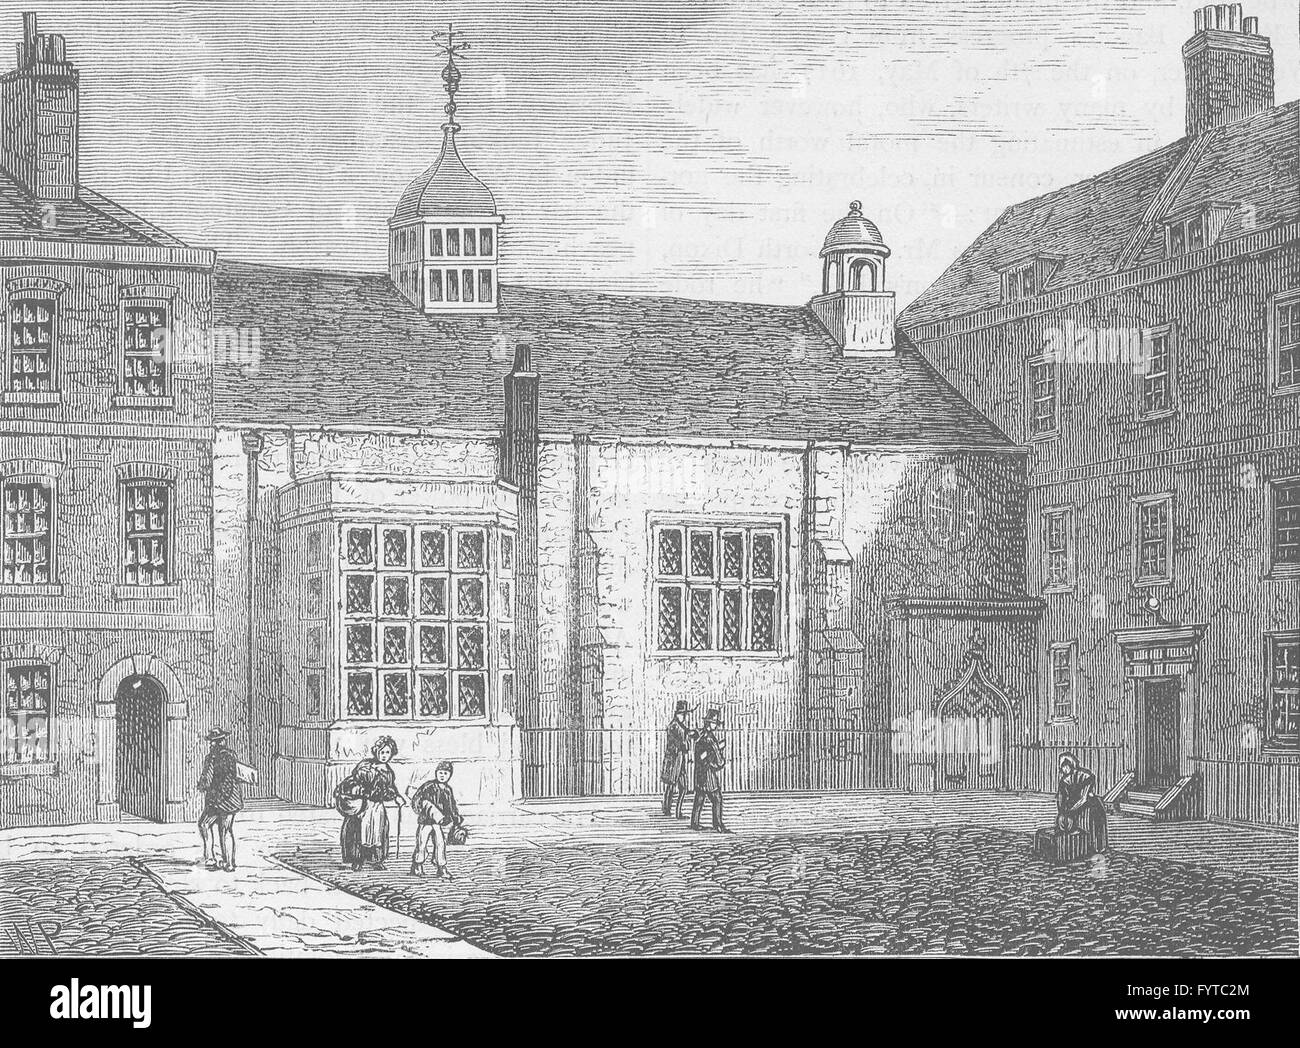 THE HOLBORN INNS OF COURT AND CHANCERY: Staple Inn. London, old print c1880 - Stock Image